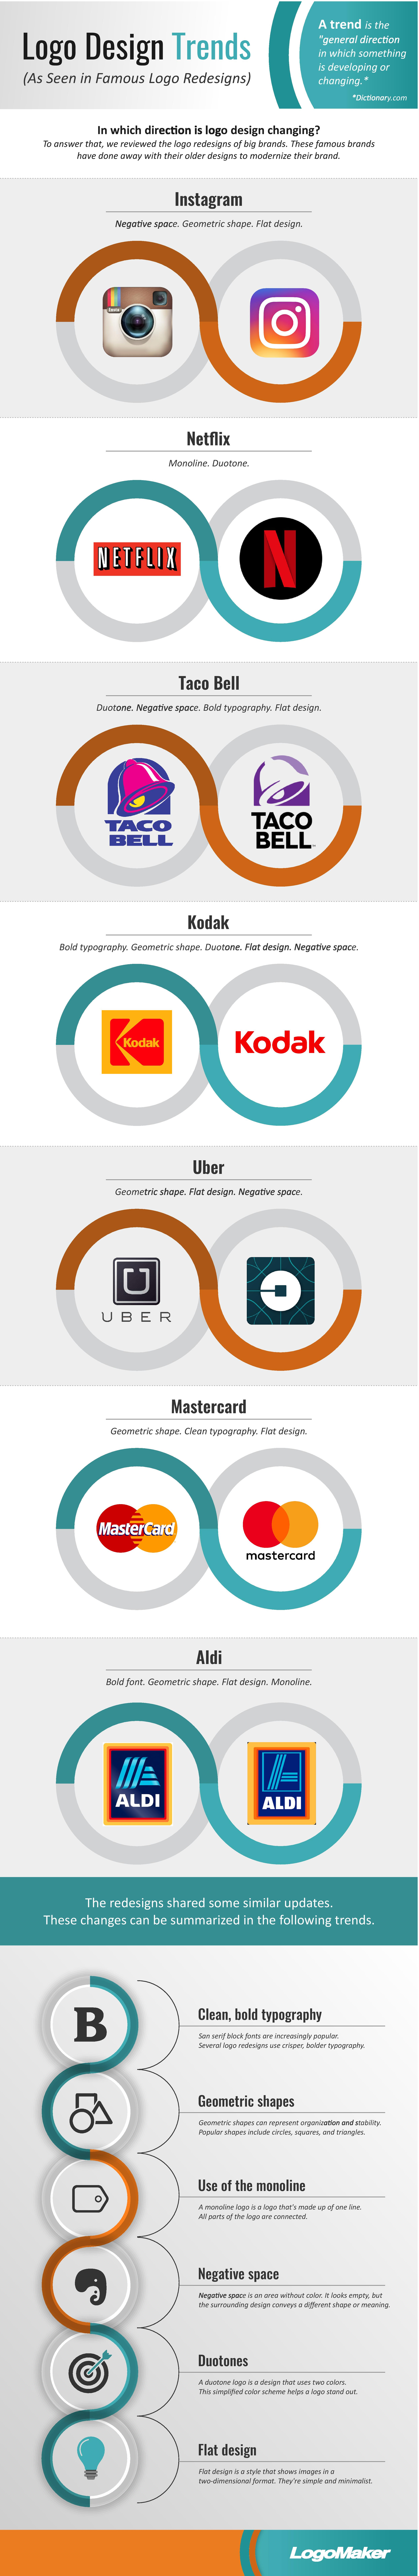 Latest Logo Redesign Trends - Infographic